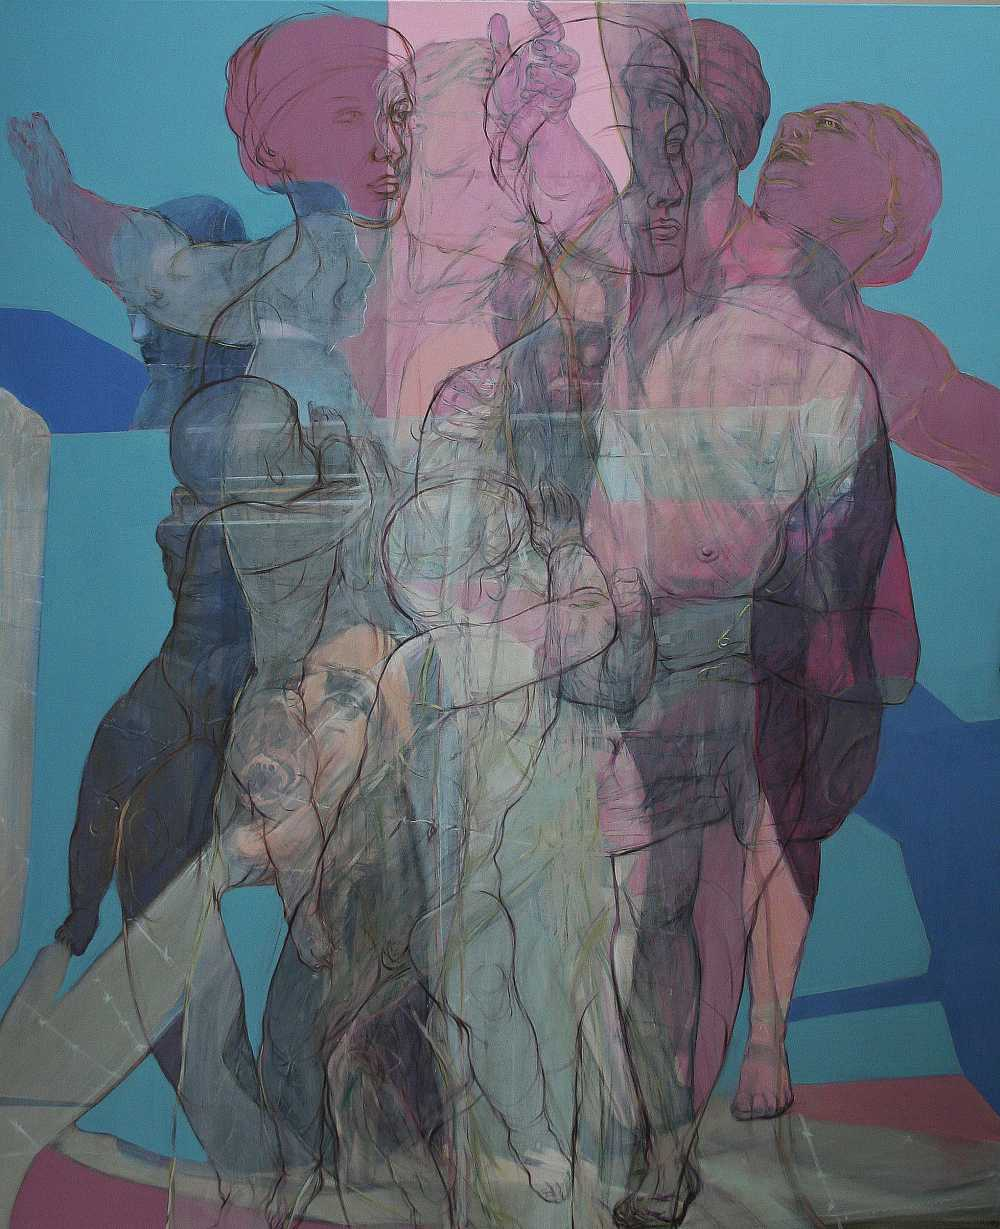 Flucht (Medea), Oil on linen, 220 x 180 cm, 2016, Antike Dispositionen, artfein GALLERY, Henri Deparade